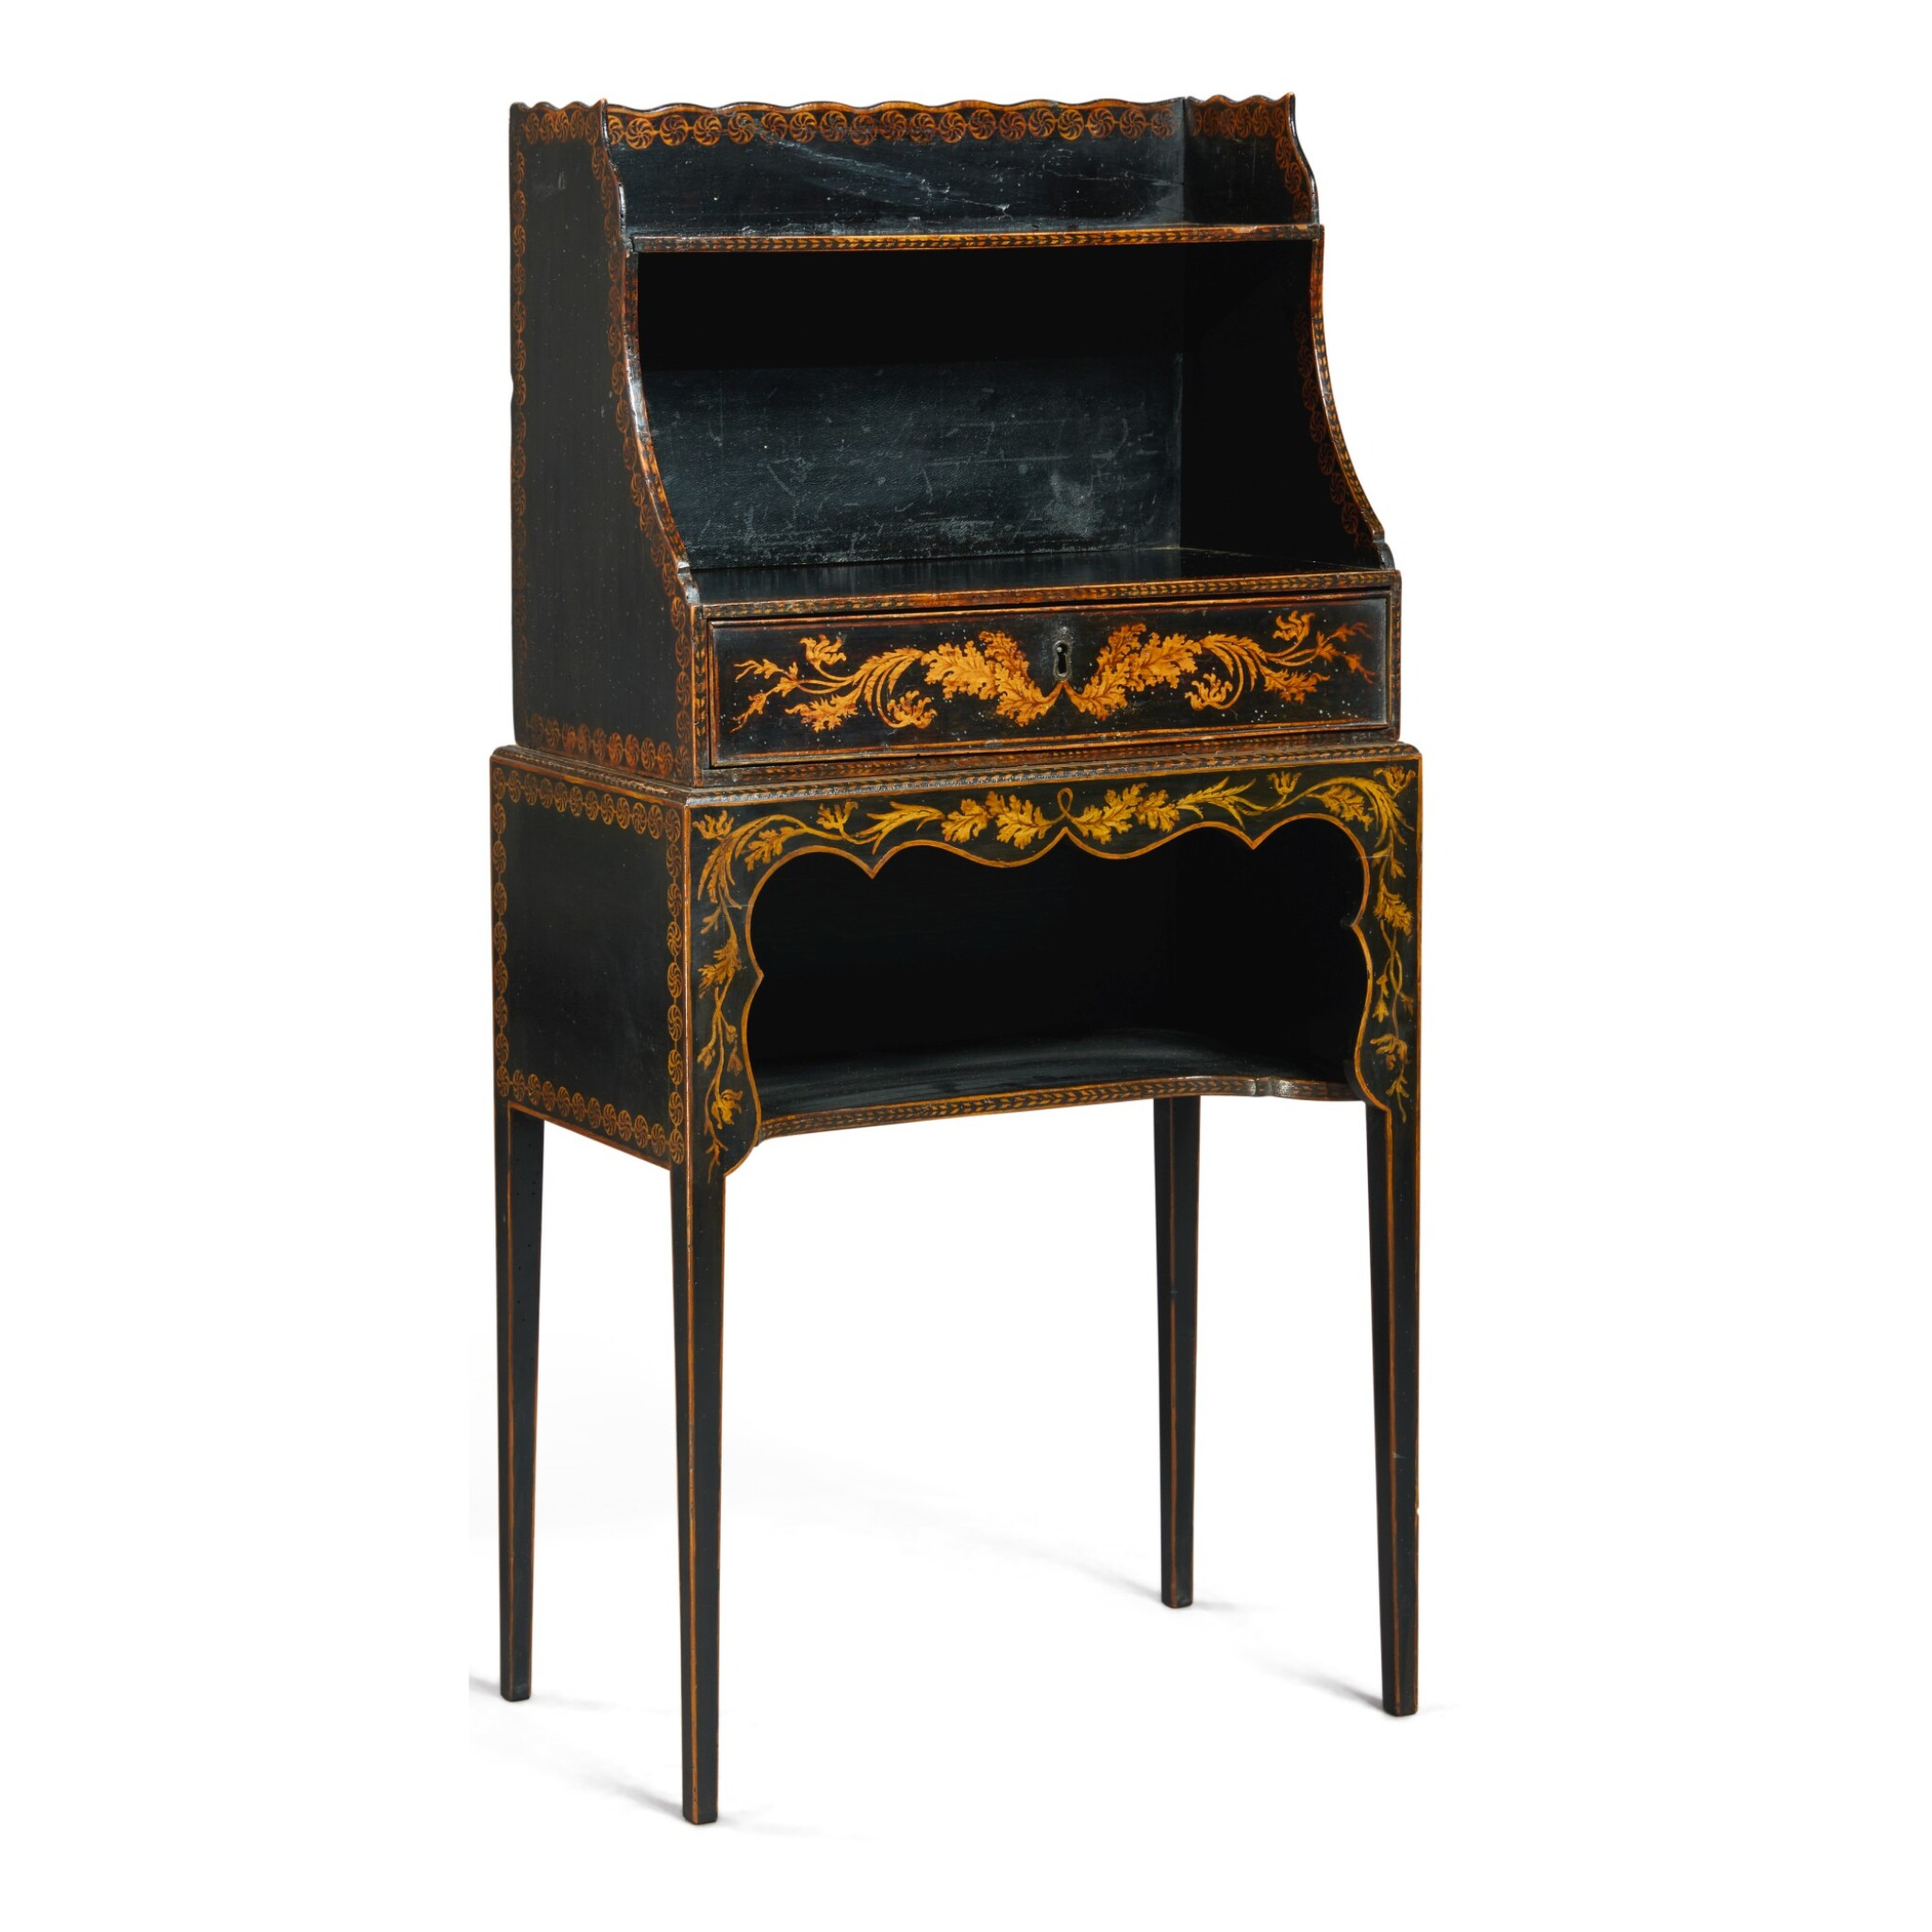 View full screen - View 1 of Lot 130. A REGENCY BLACK AND GOLD JAPANNED SMALL ETAGERE, FIRST HALF 19TH CENTURY.